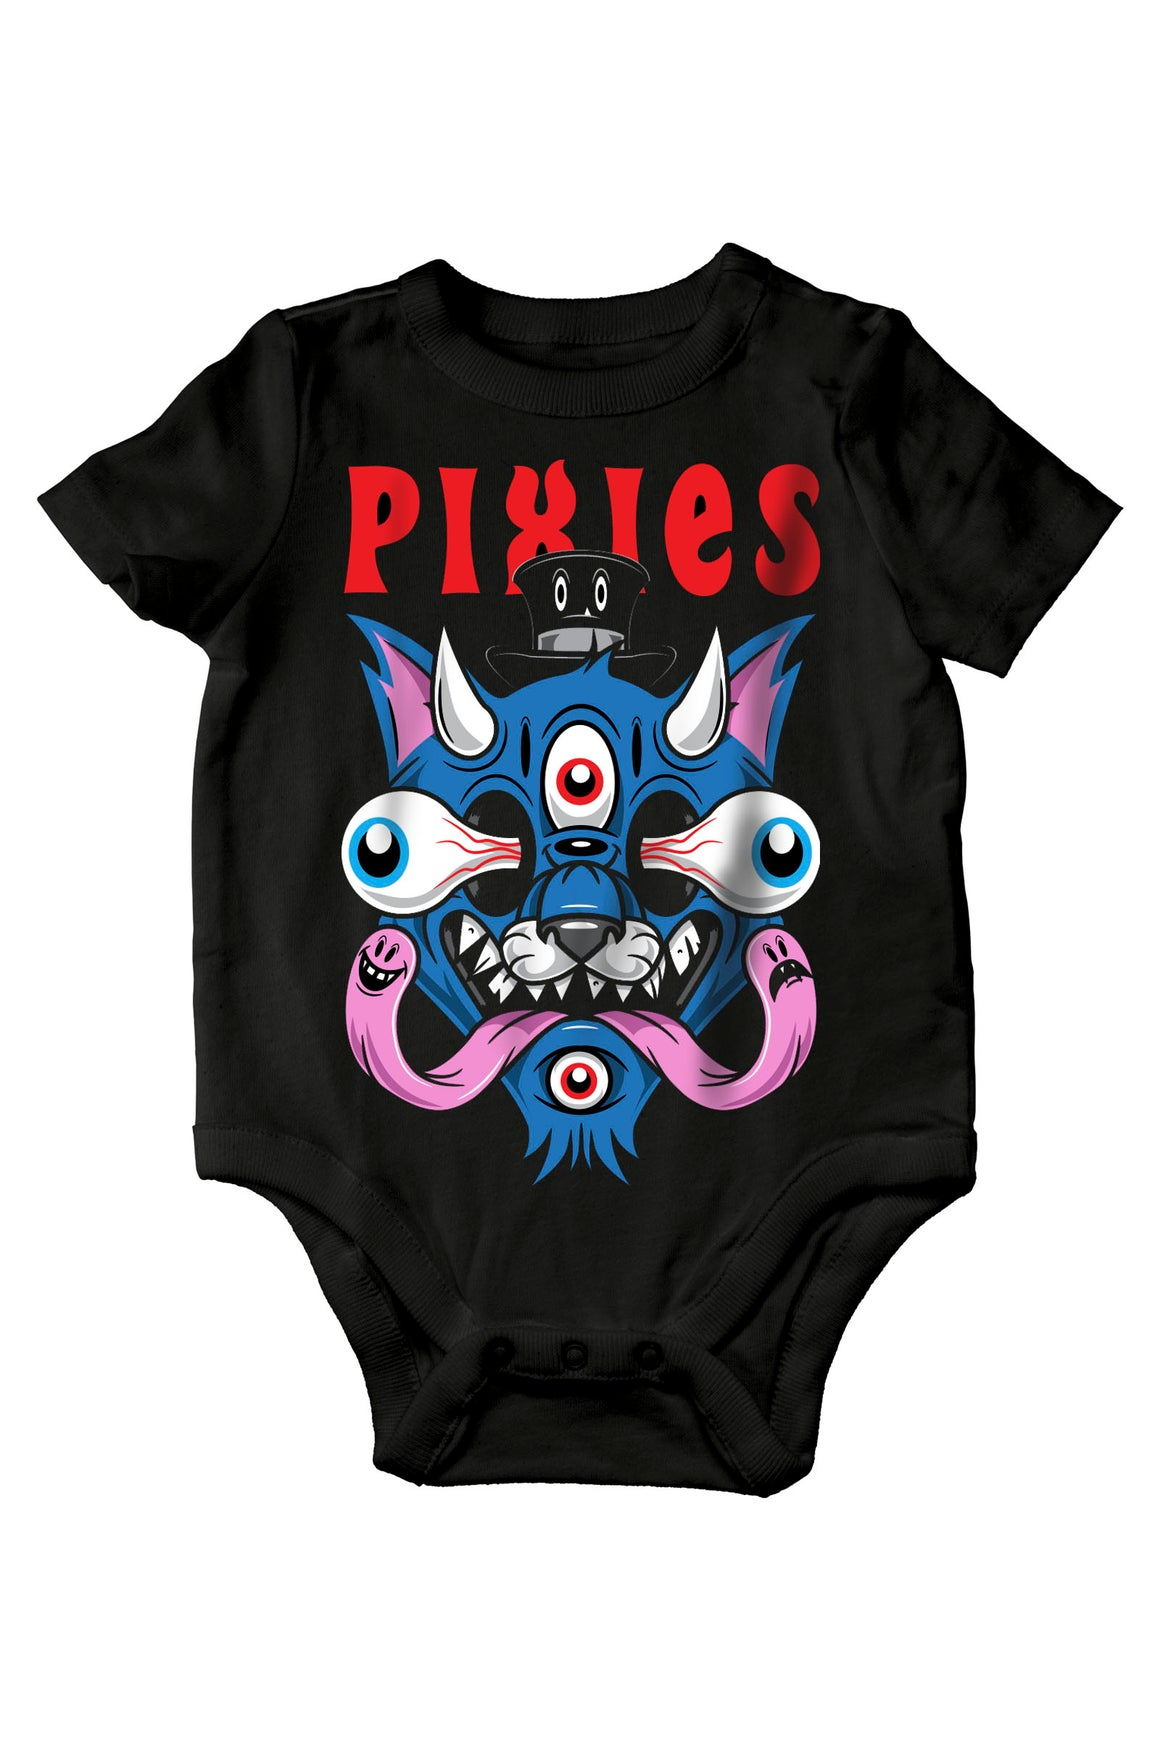 Pixies Demon Kitty Onesie Black